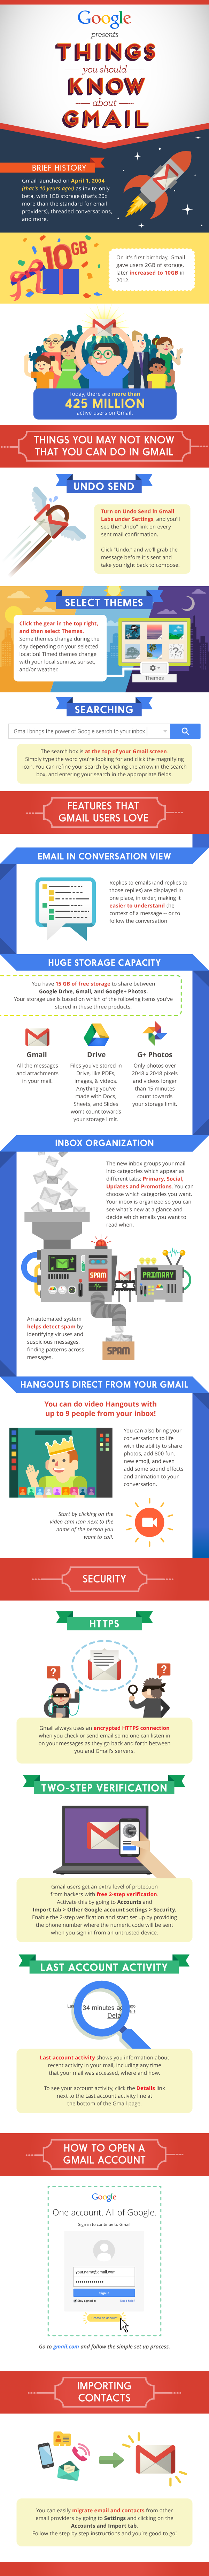 info - Why Does Gmail Remain to Be the Best Email Sign-up for Blogging?